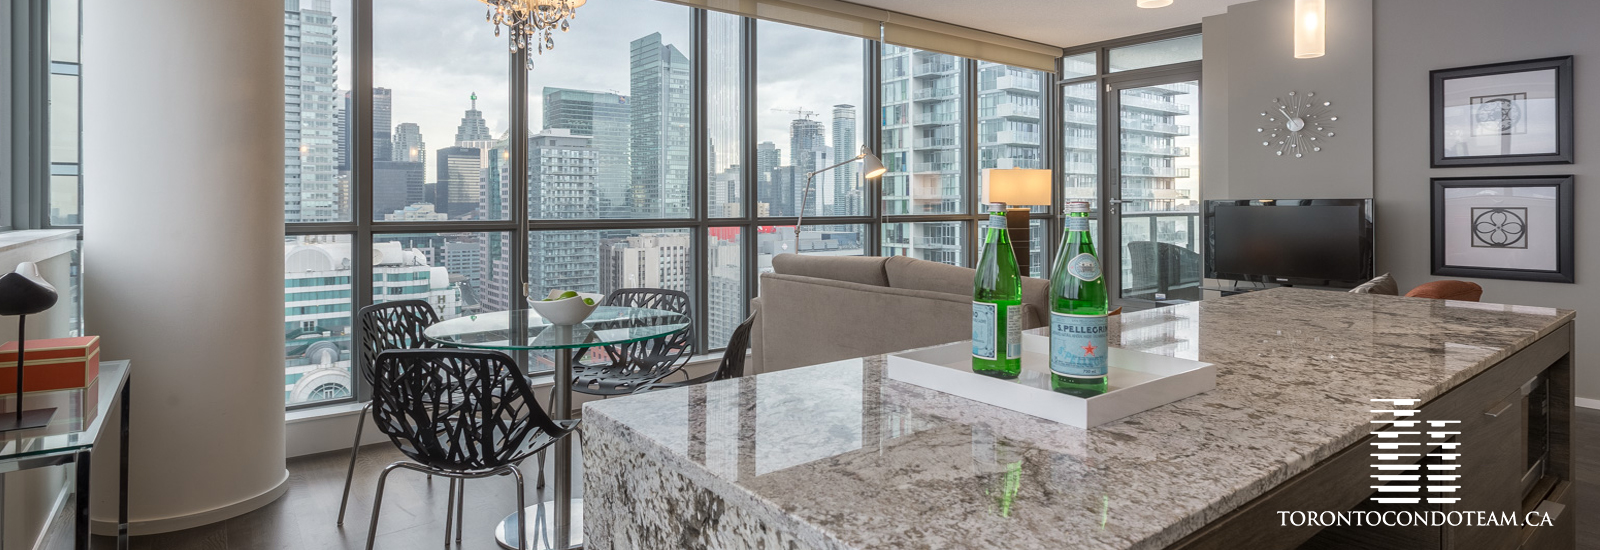 8 Charlotte Street Condos For Sale